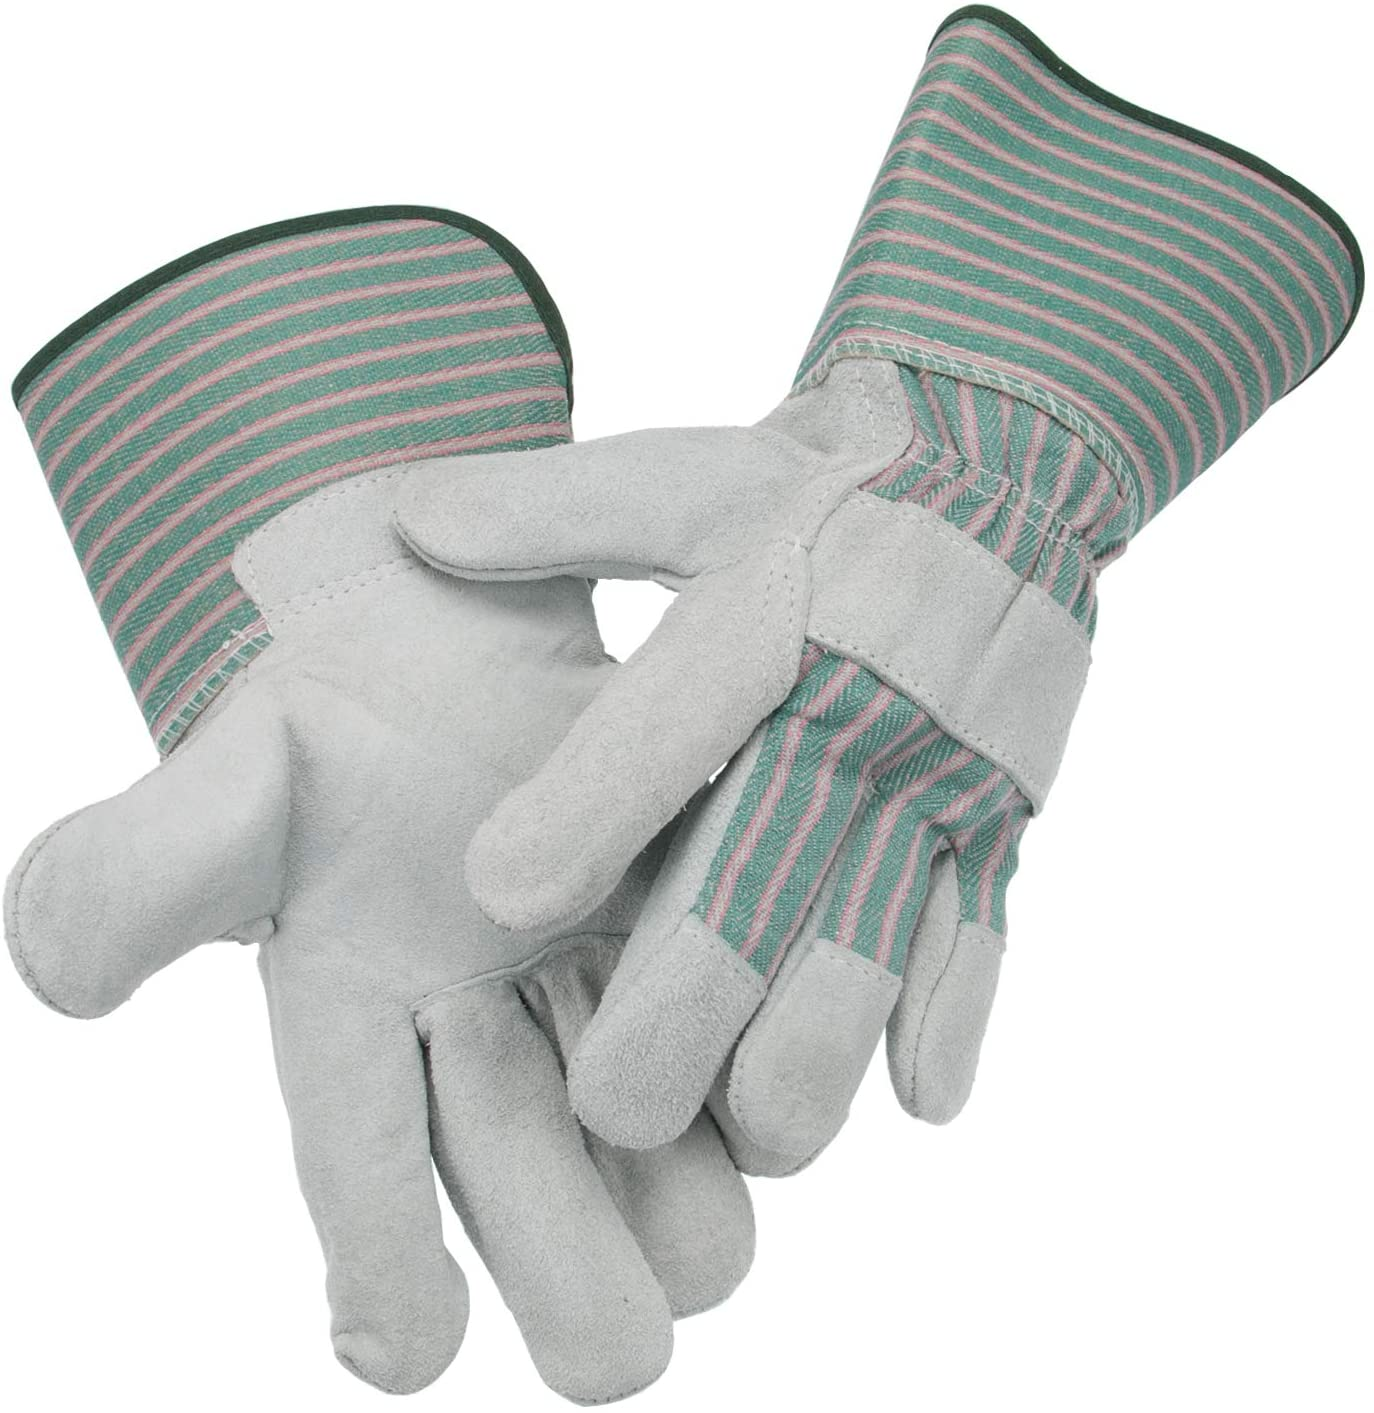 Laproter AB Grade, Premium Suede Leather Work Gloves with Extra Long Rubberized SAFETY Cuff, Size L, 13cm Palm Width, 1 Pair